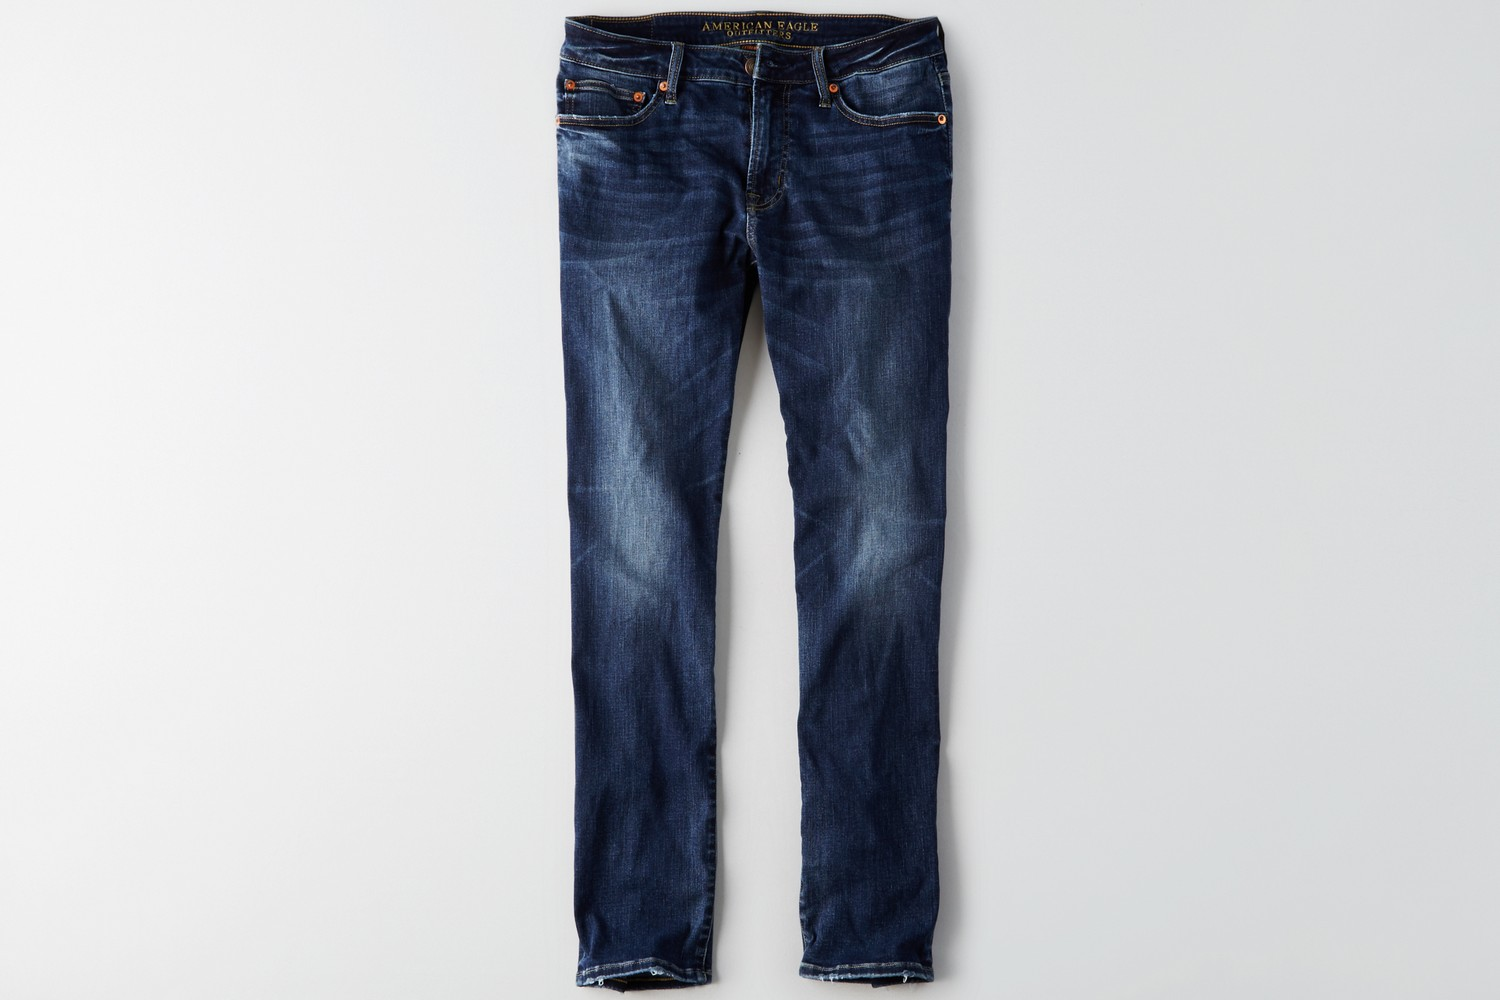 AE-MENS-DENIM-dark wash with whiskers, no destroy, extreme flex slim straight, dark brushed copper button, copper rivets, aged bronze zipper JAP C/O Repush 5/30